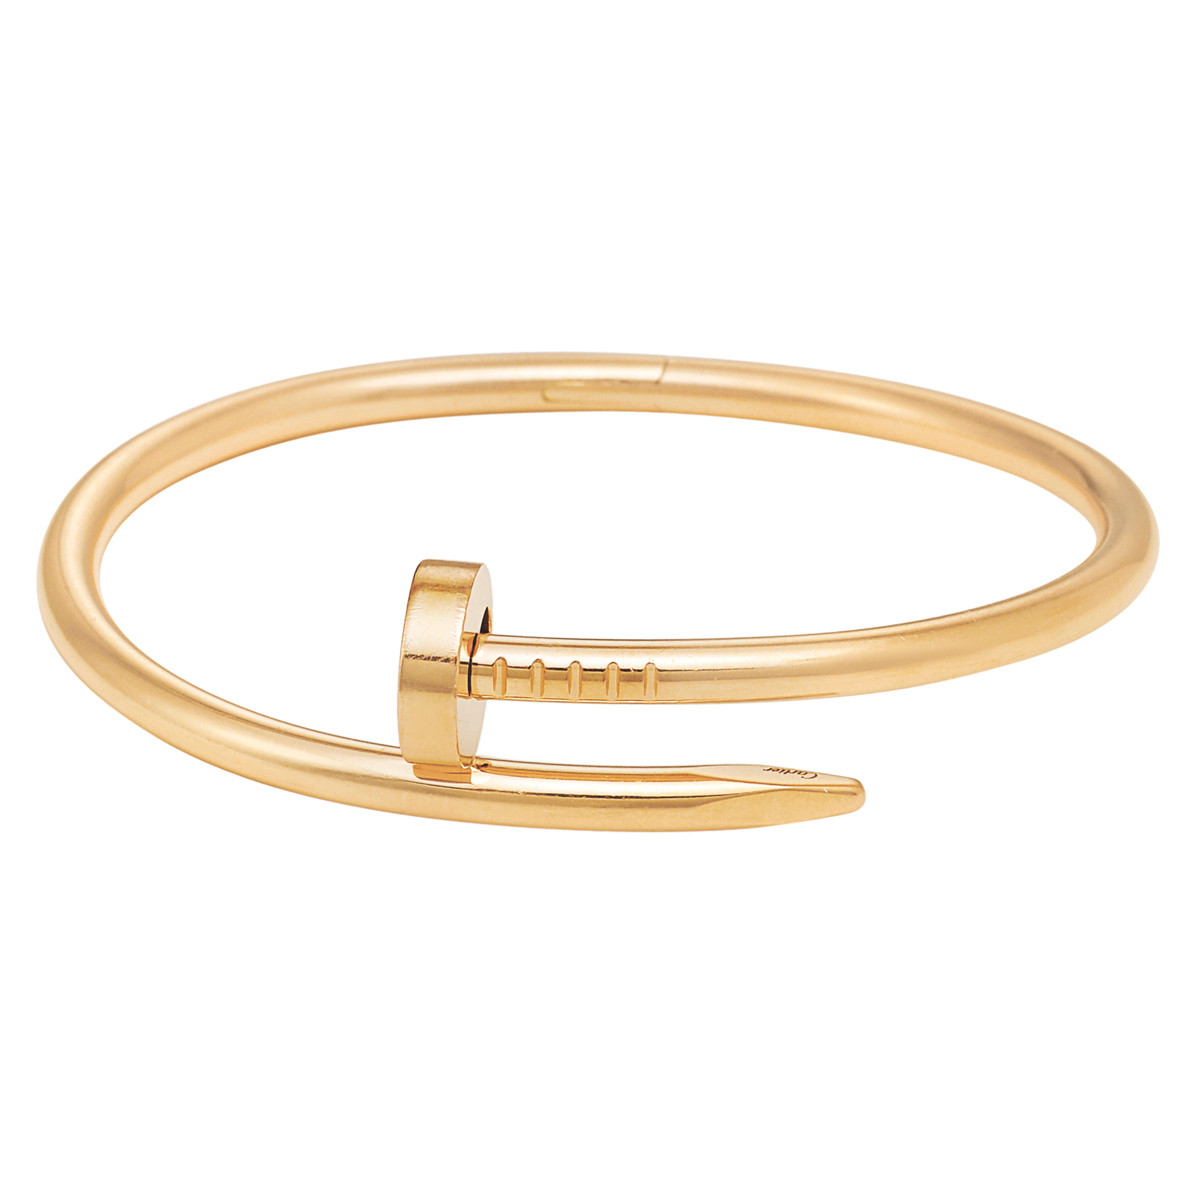 Juste Un Clou Nail Motif Bangle Bracelet In Polished 18k Yellow Gold Numbered Bbp059 Signed Cartier Hinged Tension Closure Size 16